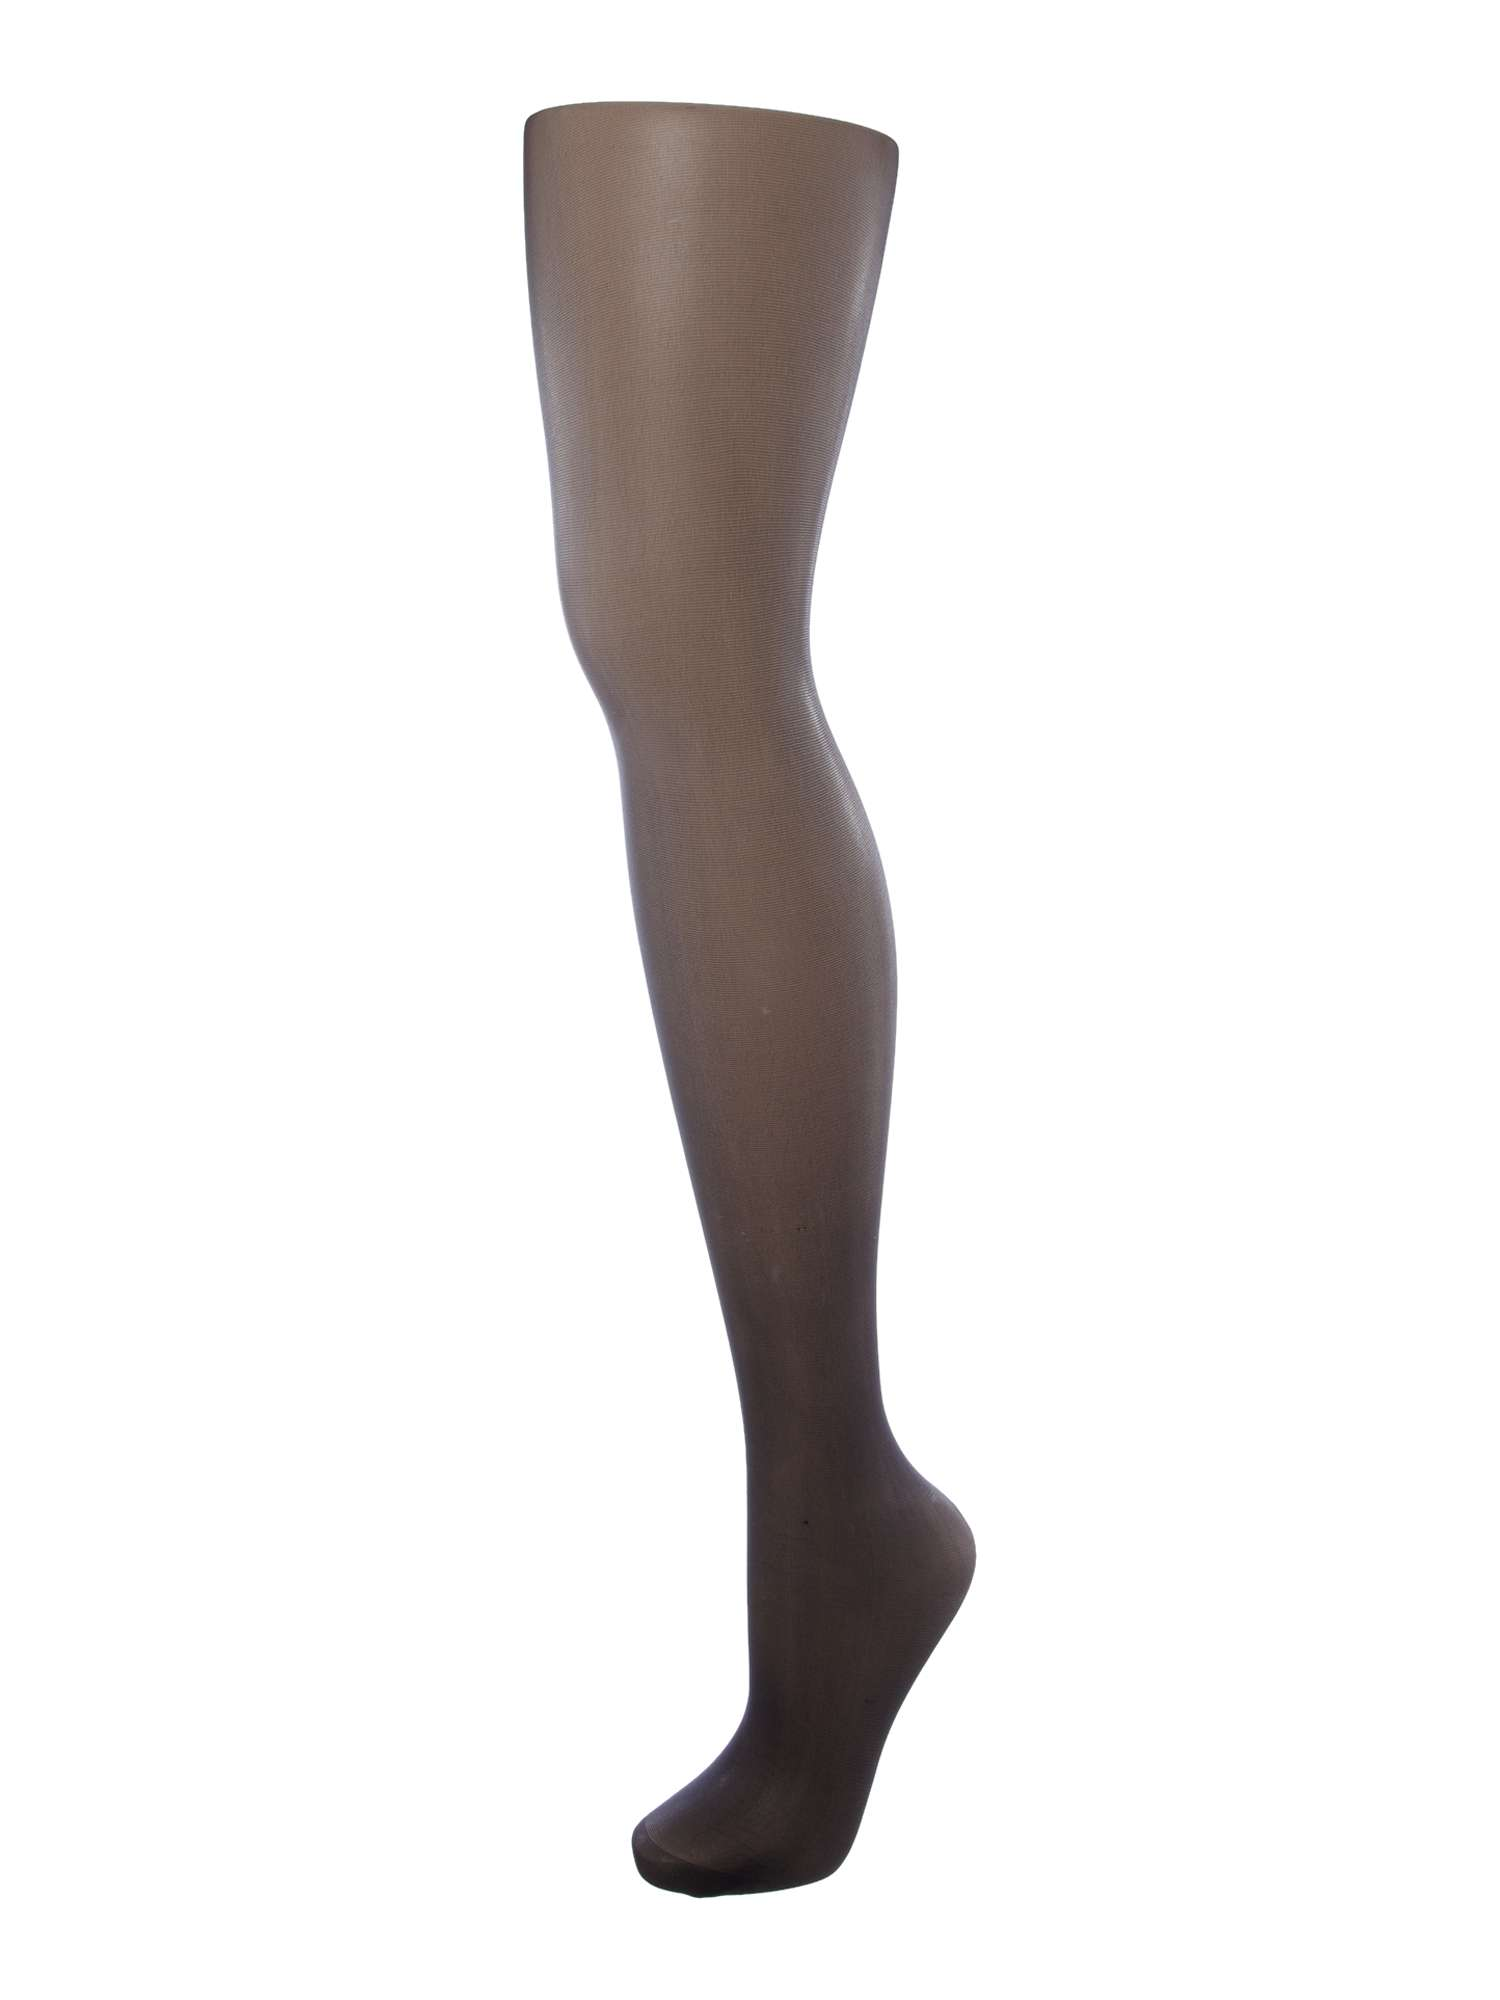 b6e1beedc Aristoc Bodytoner hourglass 10 denier tights ...